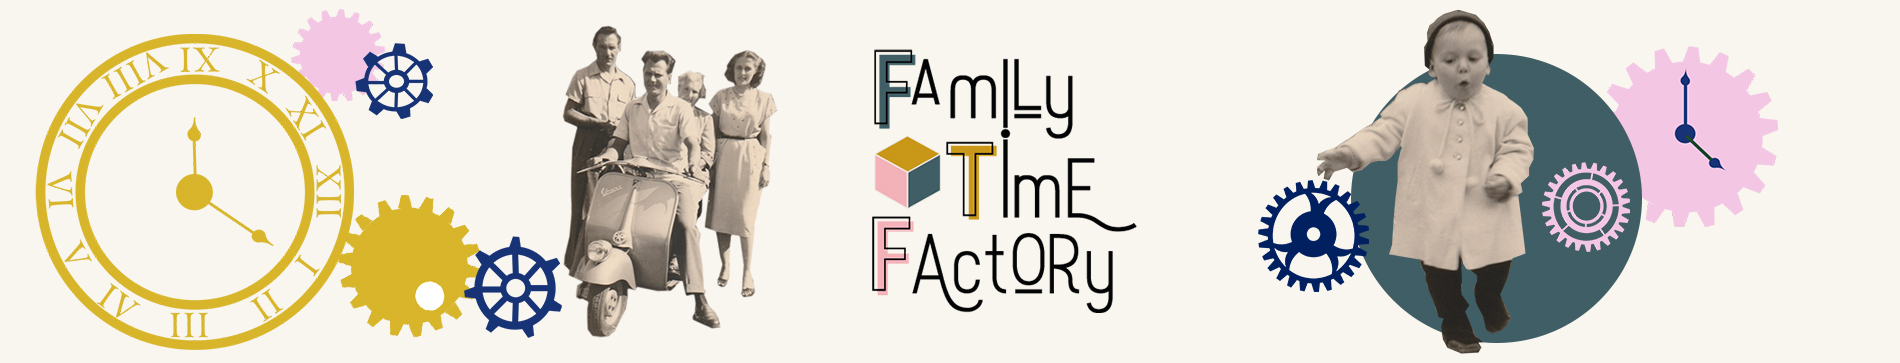 Banner_Family_Time_Factory_Club_FTF_Membress